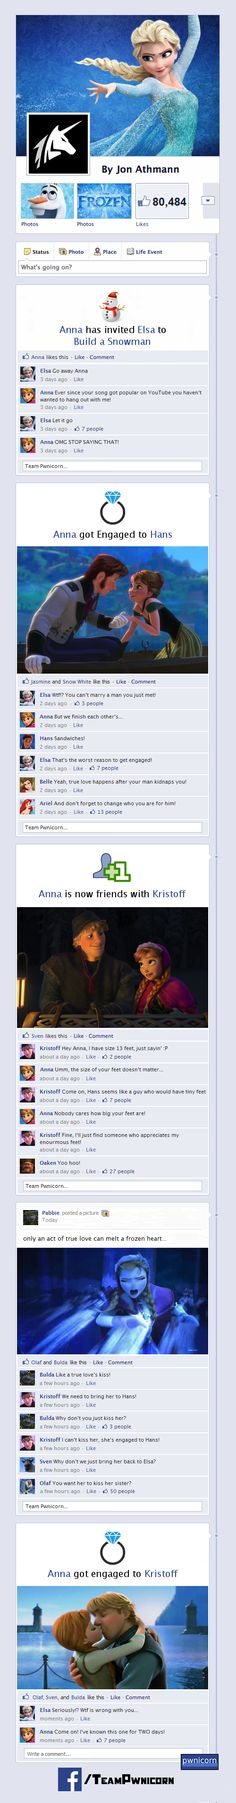 HAHAHAHA Elsa's reaction to Anna and Kristoff! Priceless!